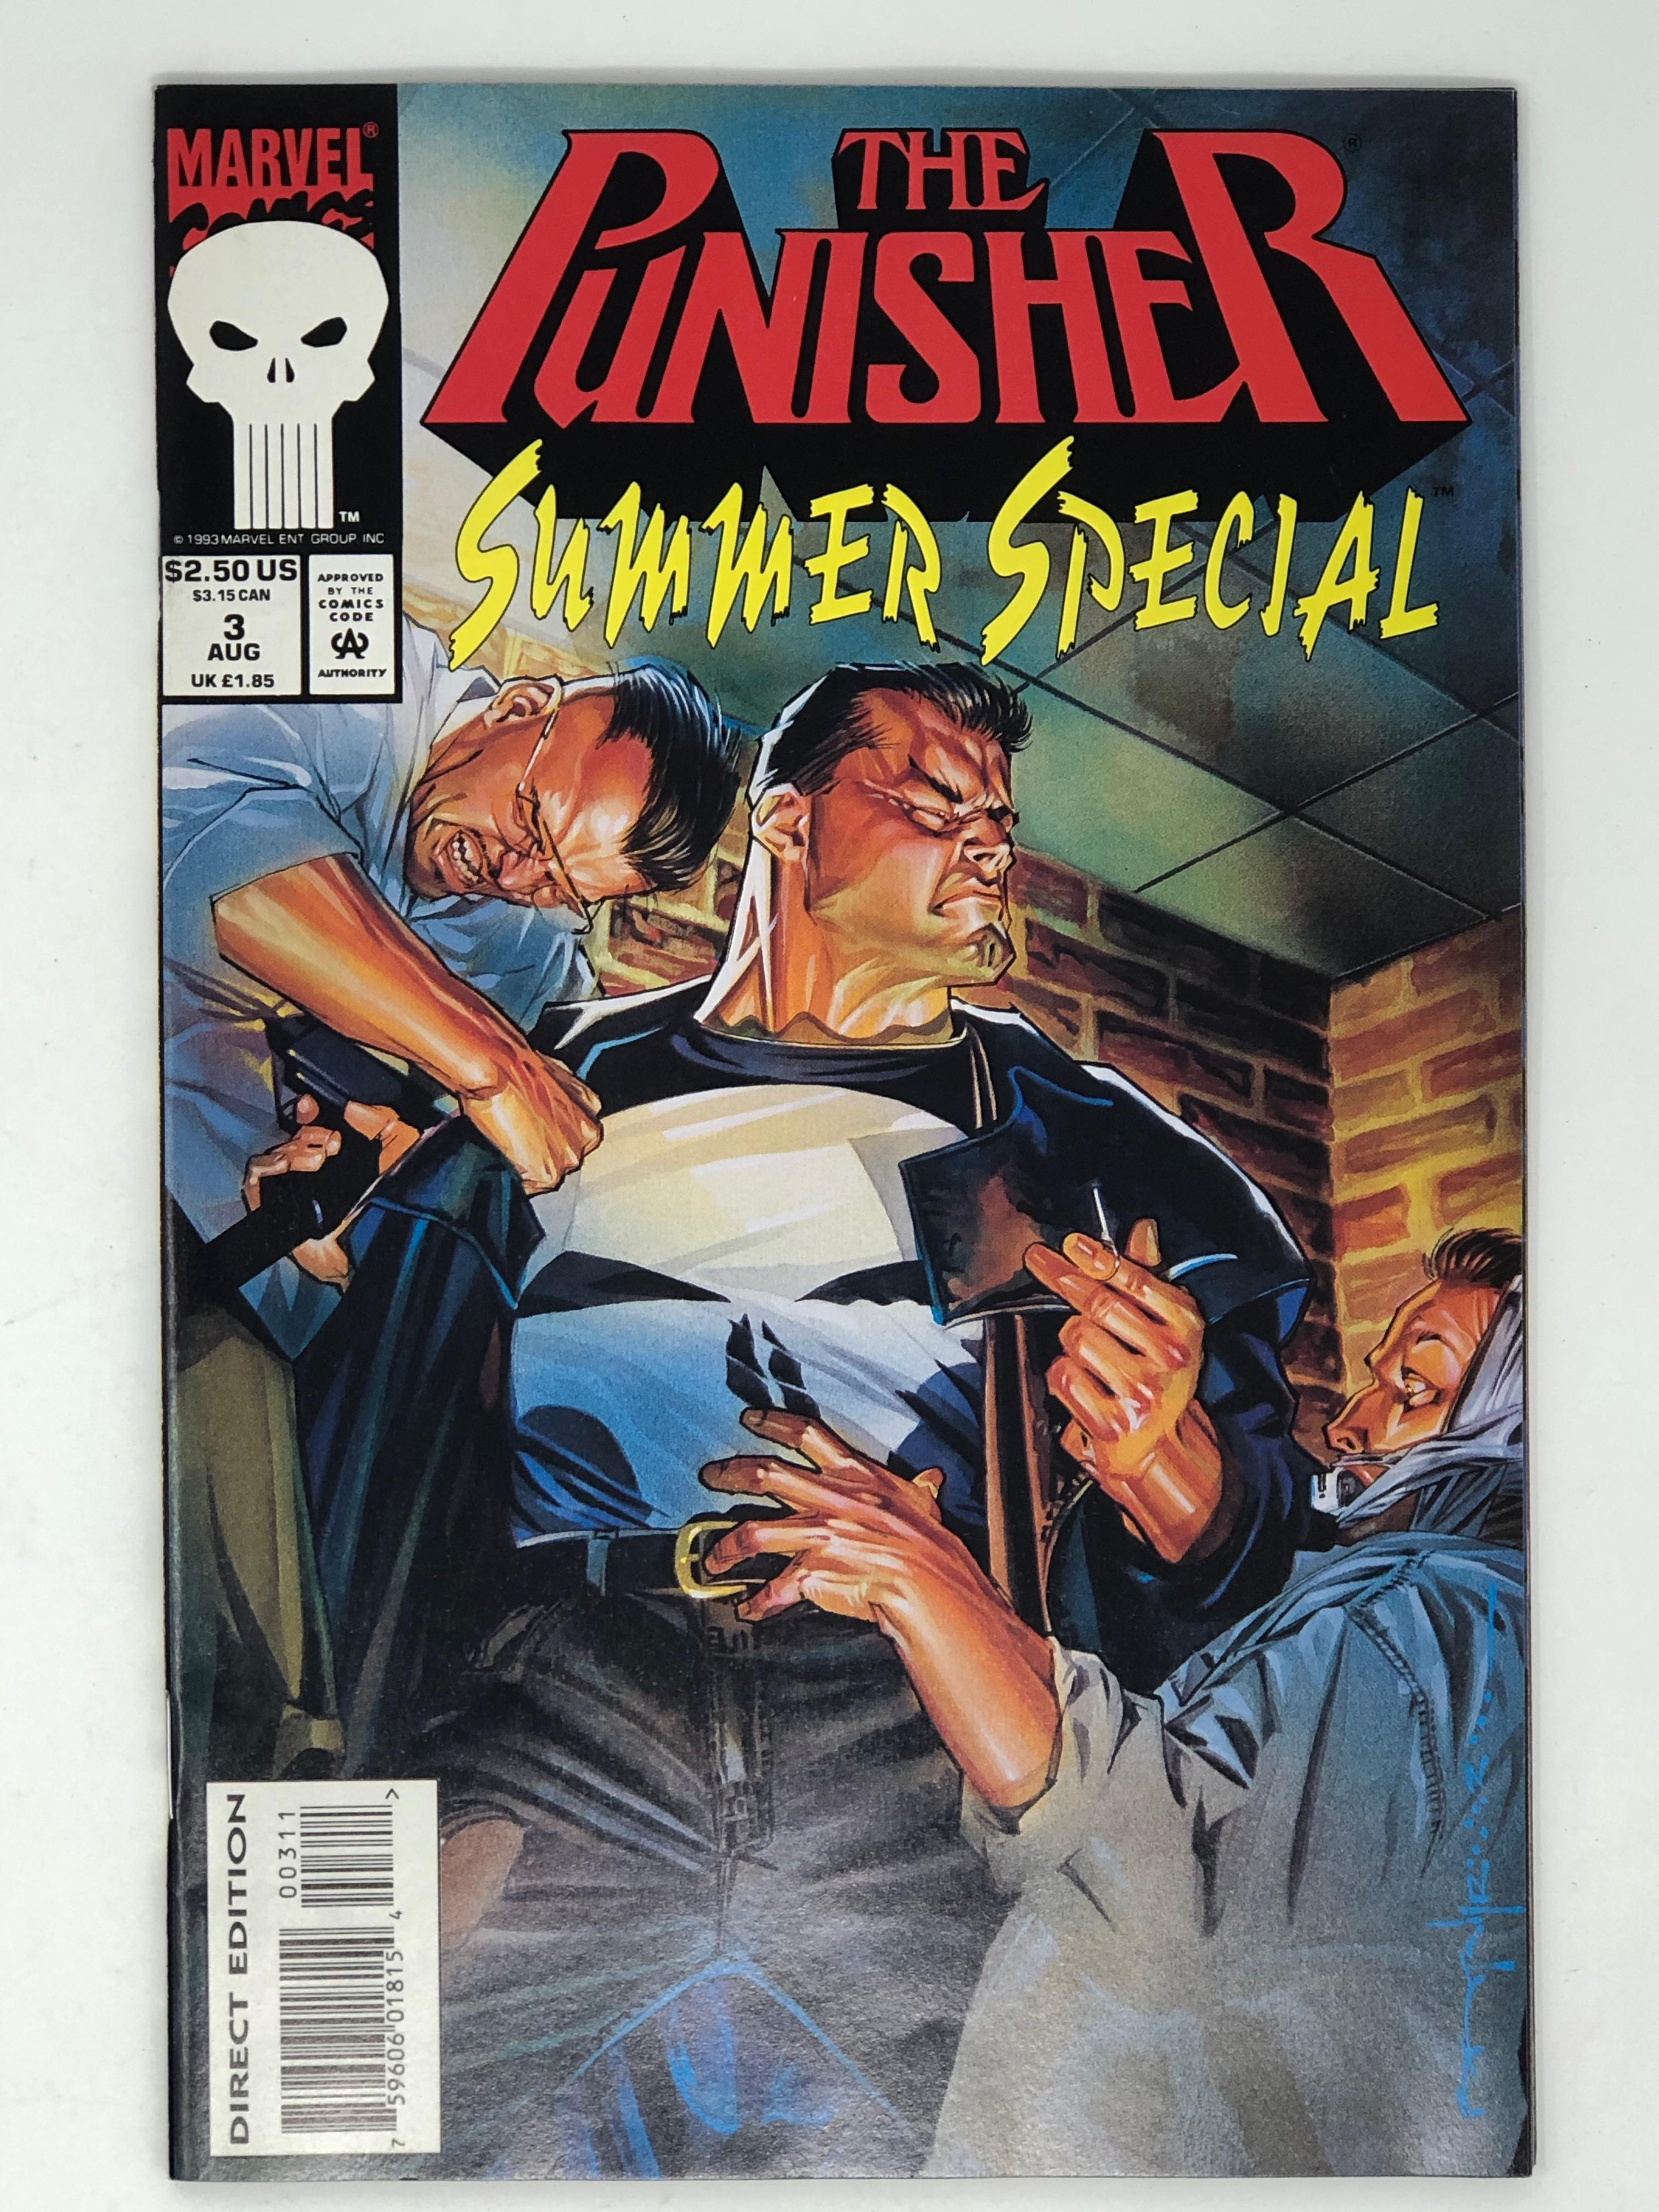 MARVEL, THE PUNISHER summer special 3